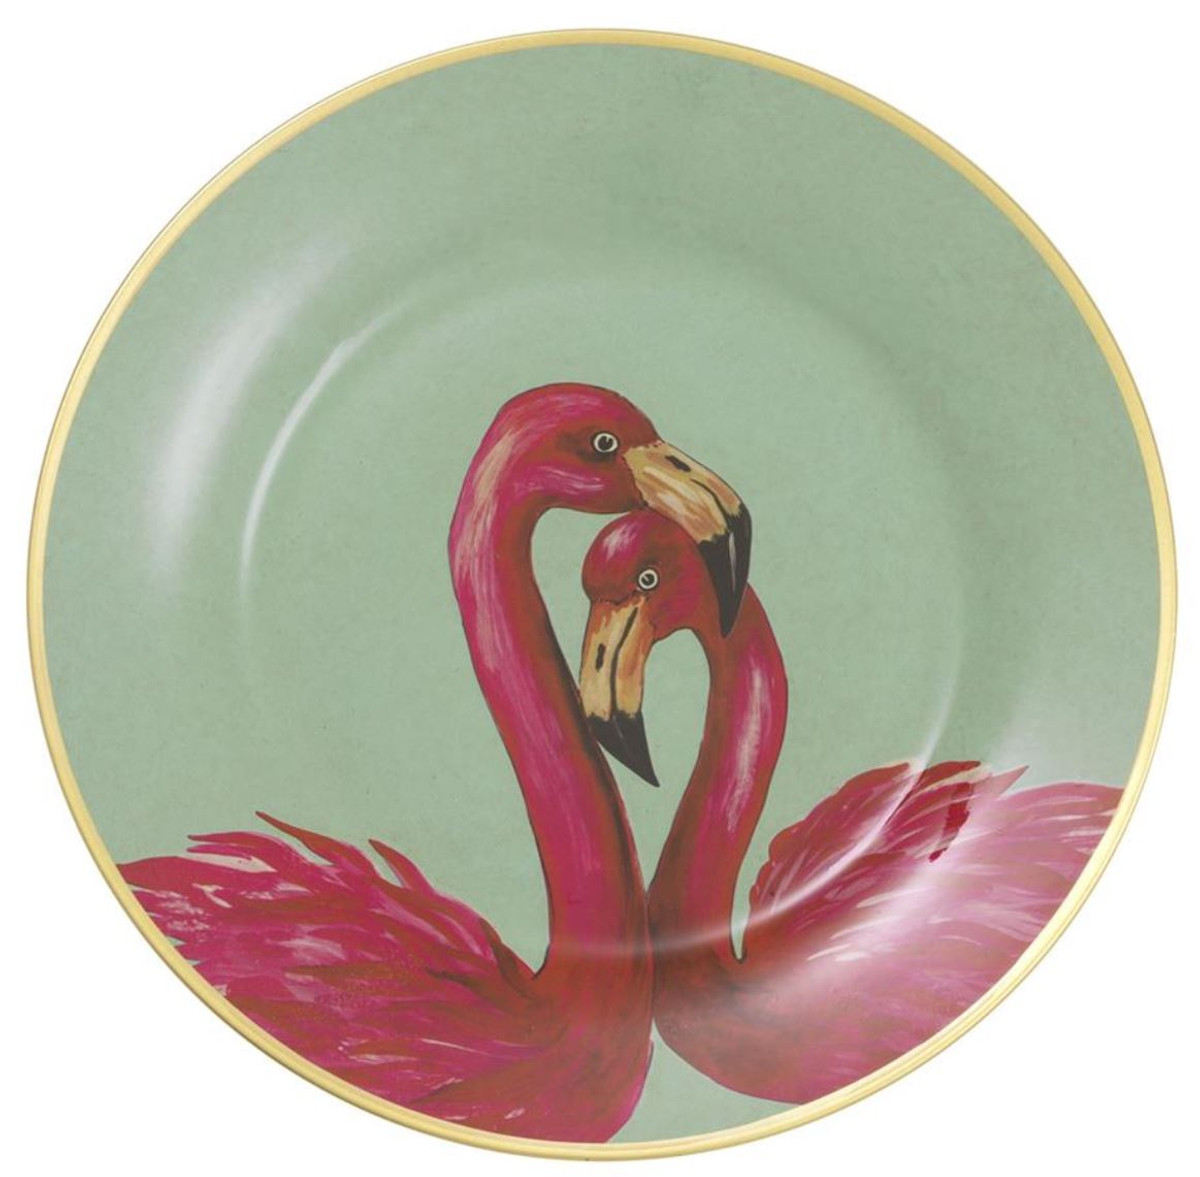 Casa Padrino Deco Porcelain Wall Plates Set Of 8 Flamingos Feathers Multicolor Gold Ø 27 Cm Luxury Wall Decoration